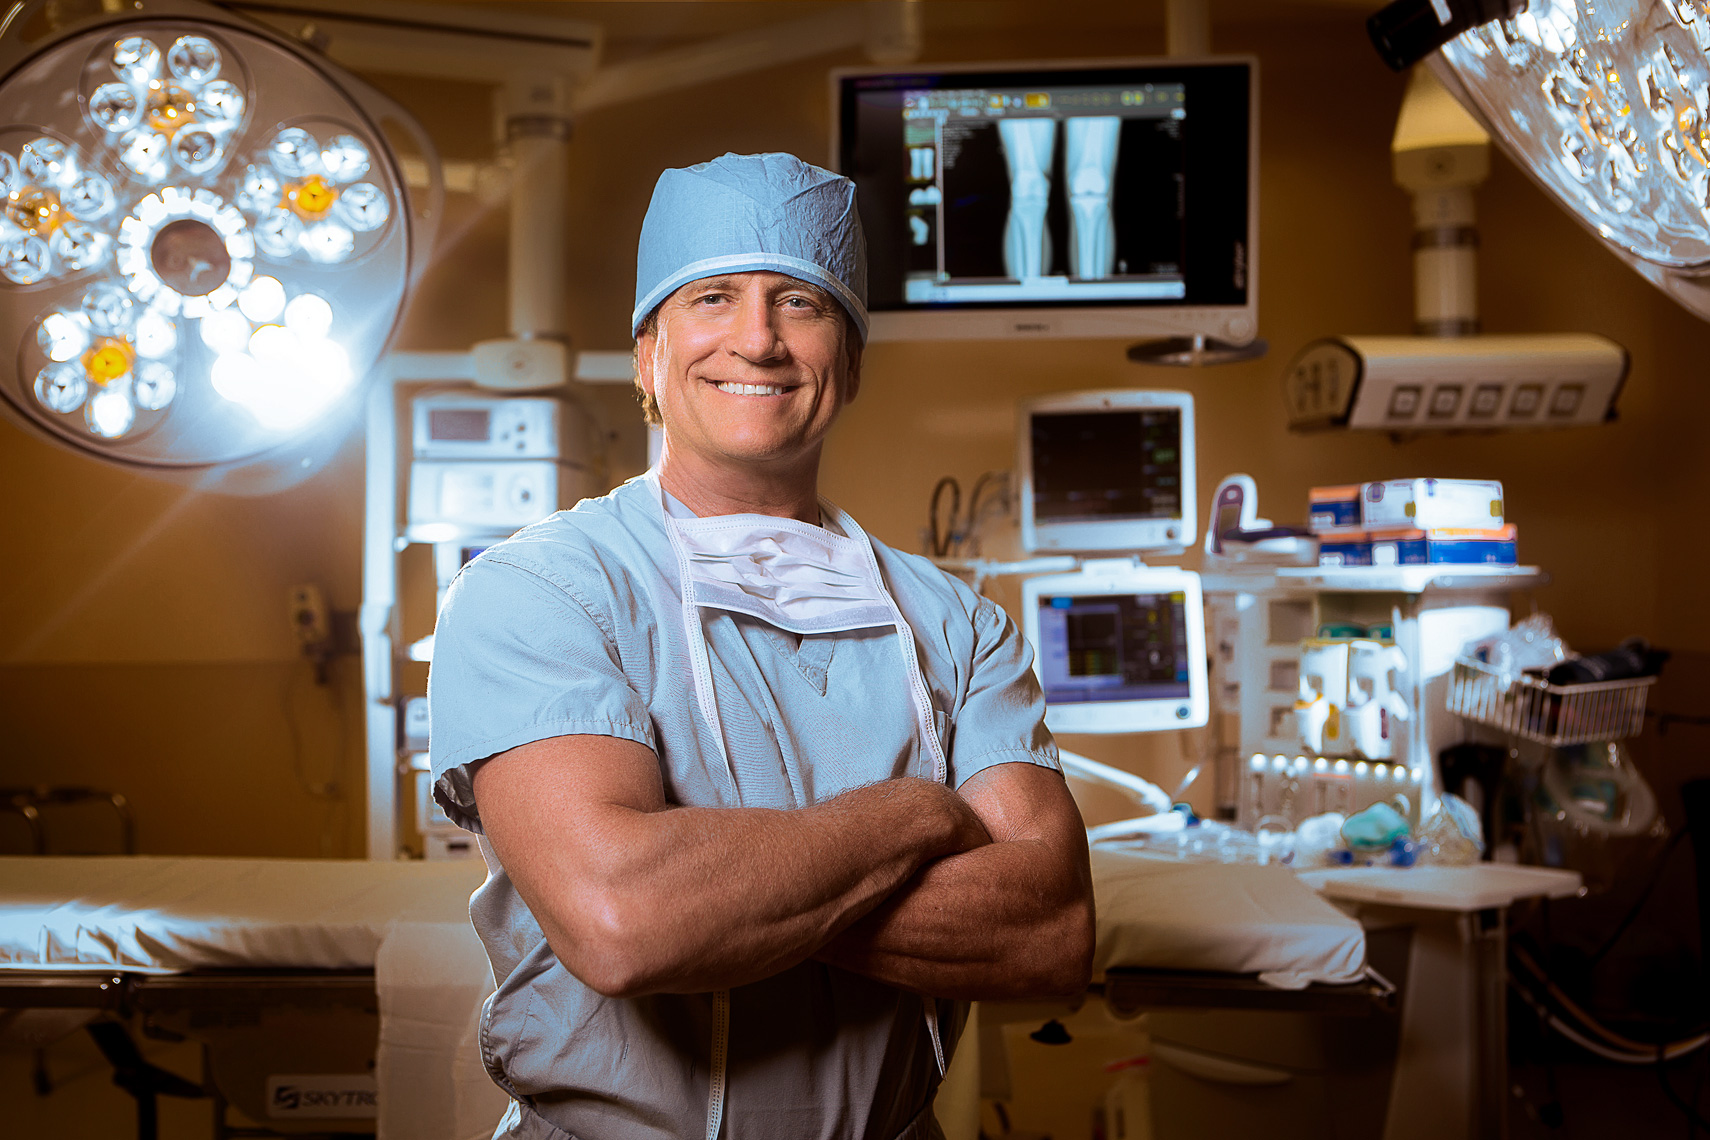 ann-arbor-portrait-photographer-scott-stewart-st-joesph-healthcare-surgeon